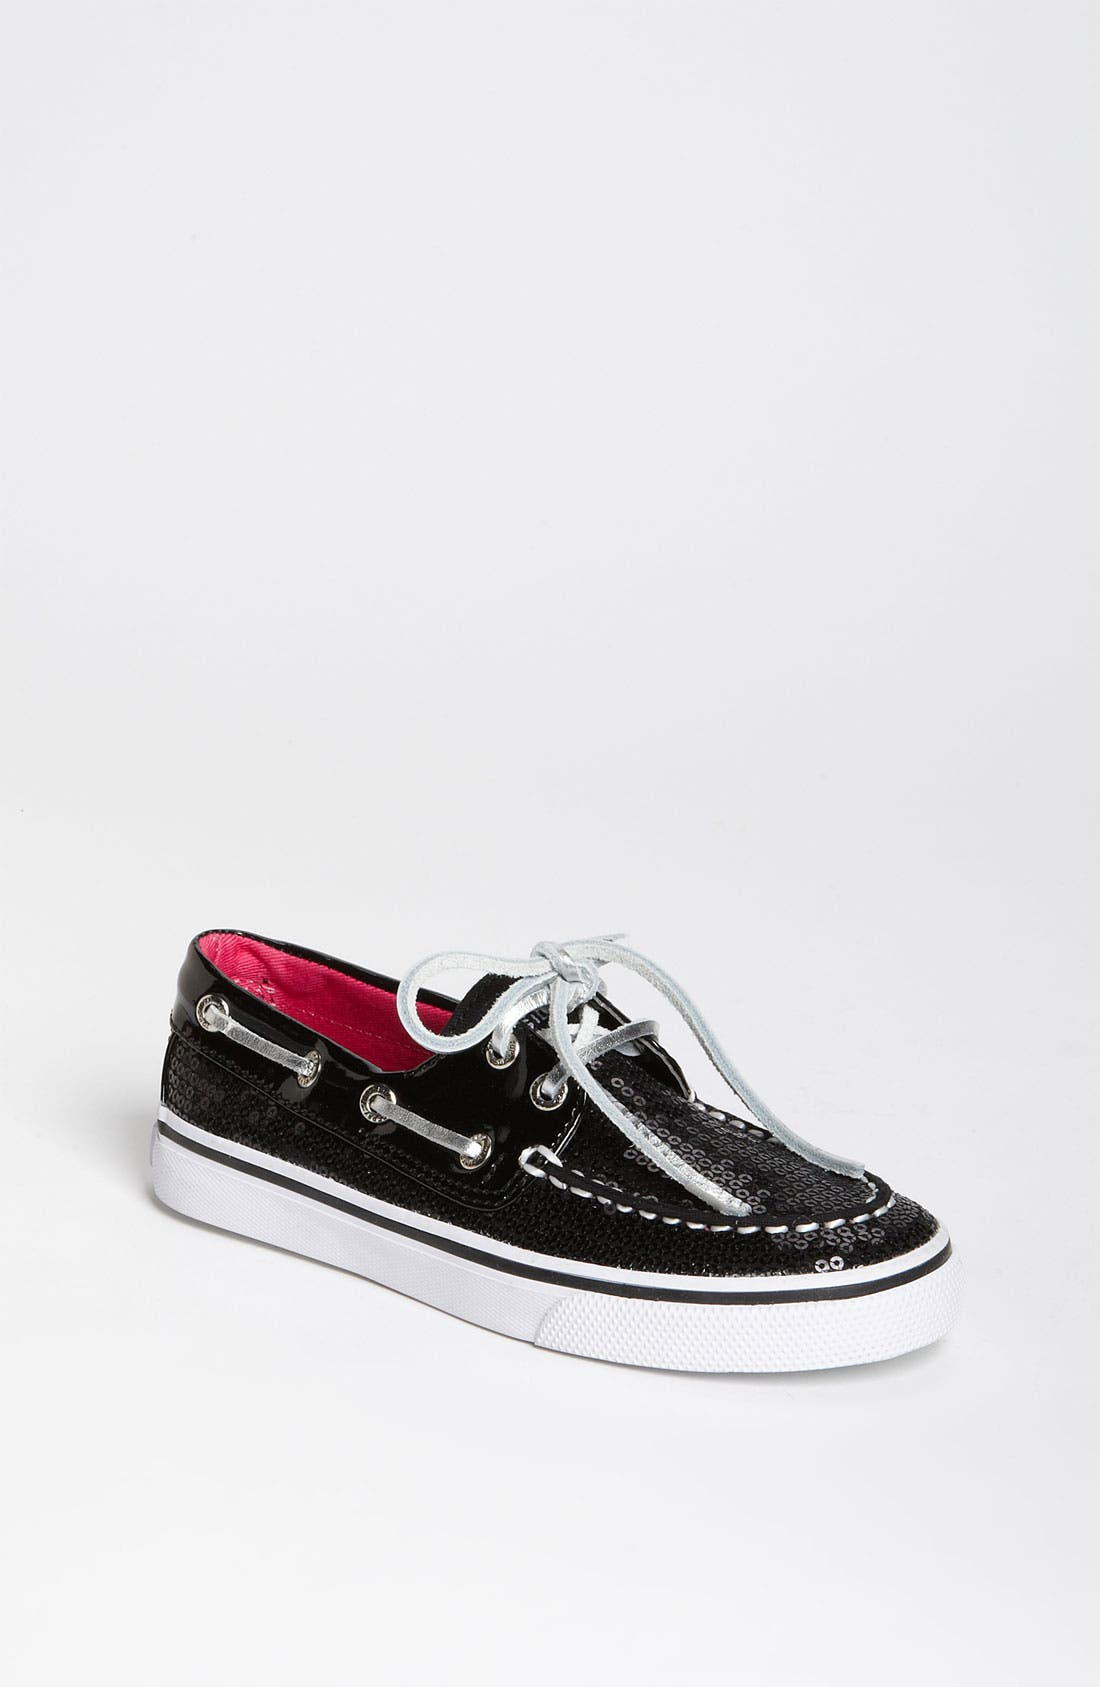 Main Image - Sperry Top-Sider® Kids 'Bahama' Boat Shoe (Walker, Toddler, Little Kid, Big Kid)